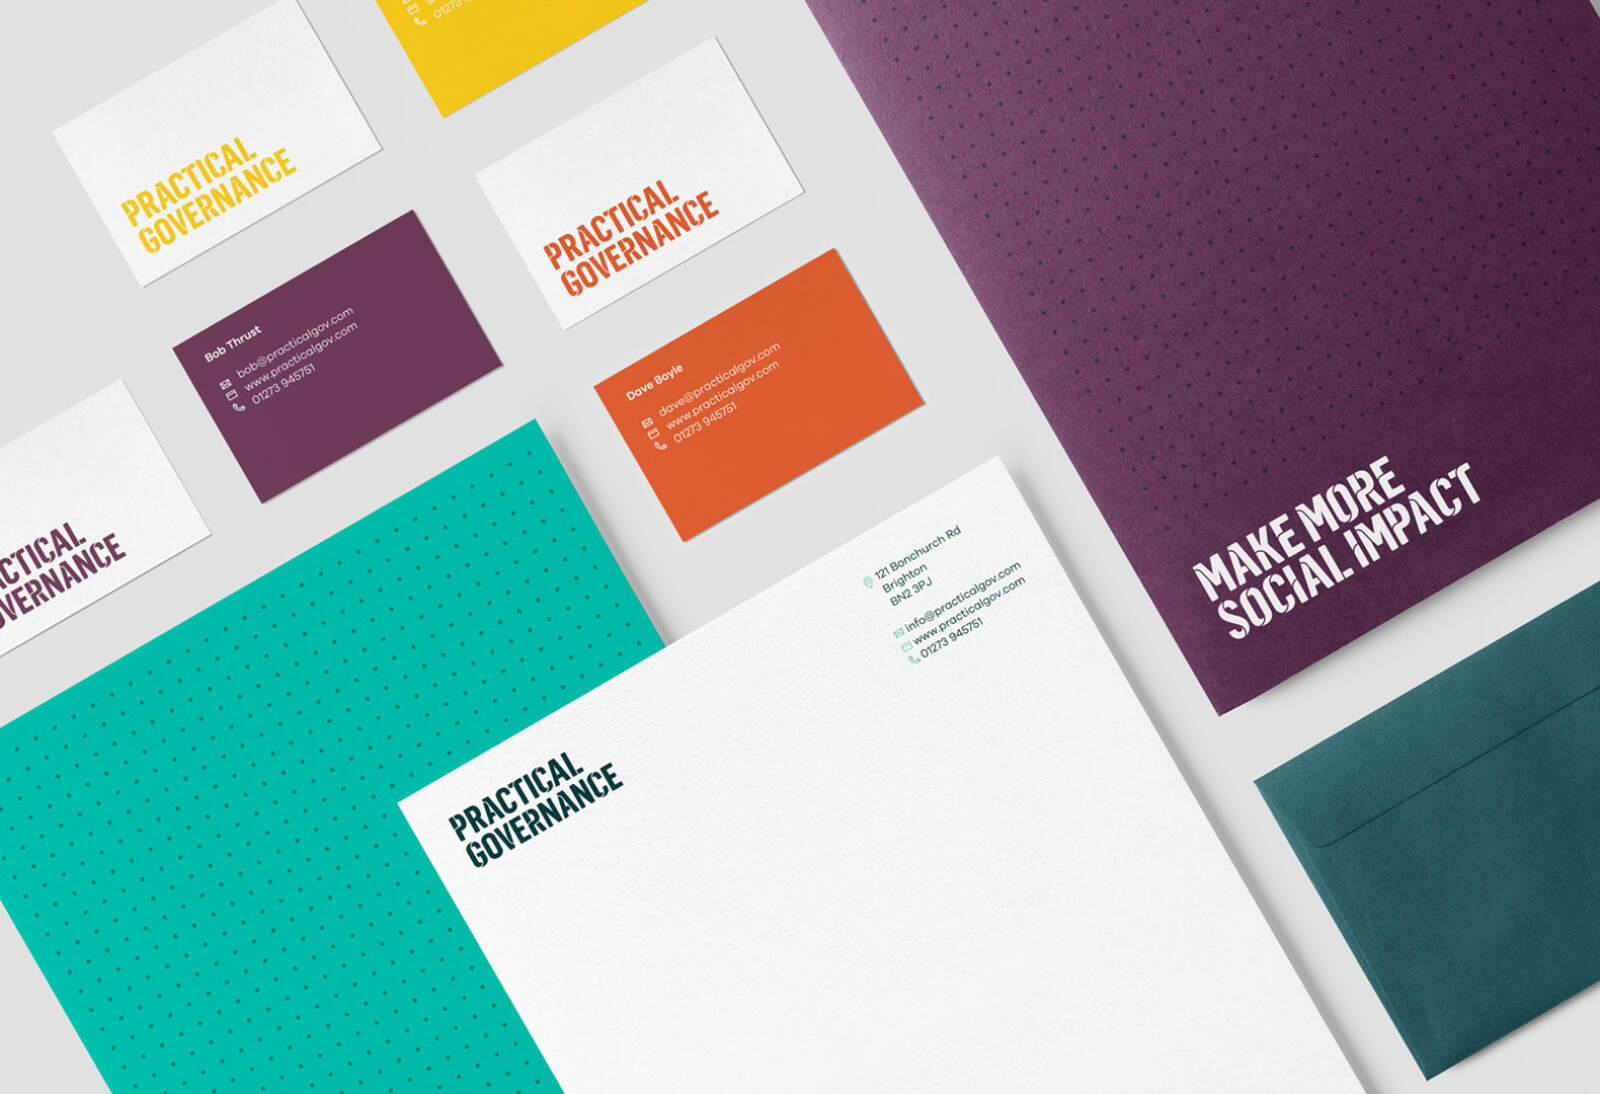 Practical Governance brand applied to their stationery — letterheads, business cards, compliment slips, etc.